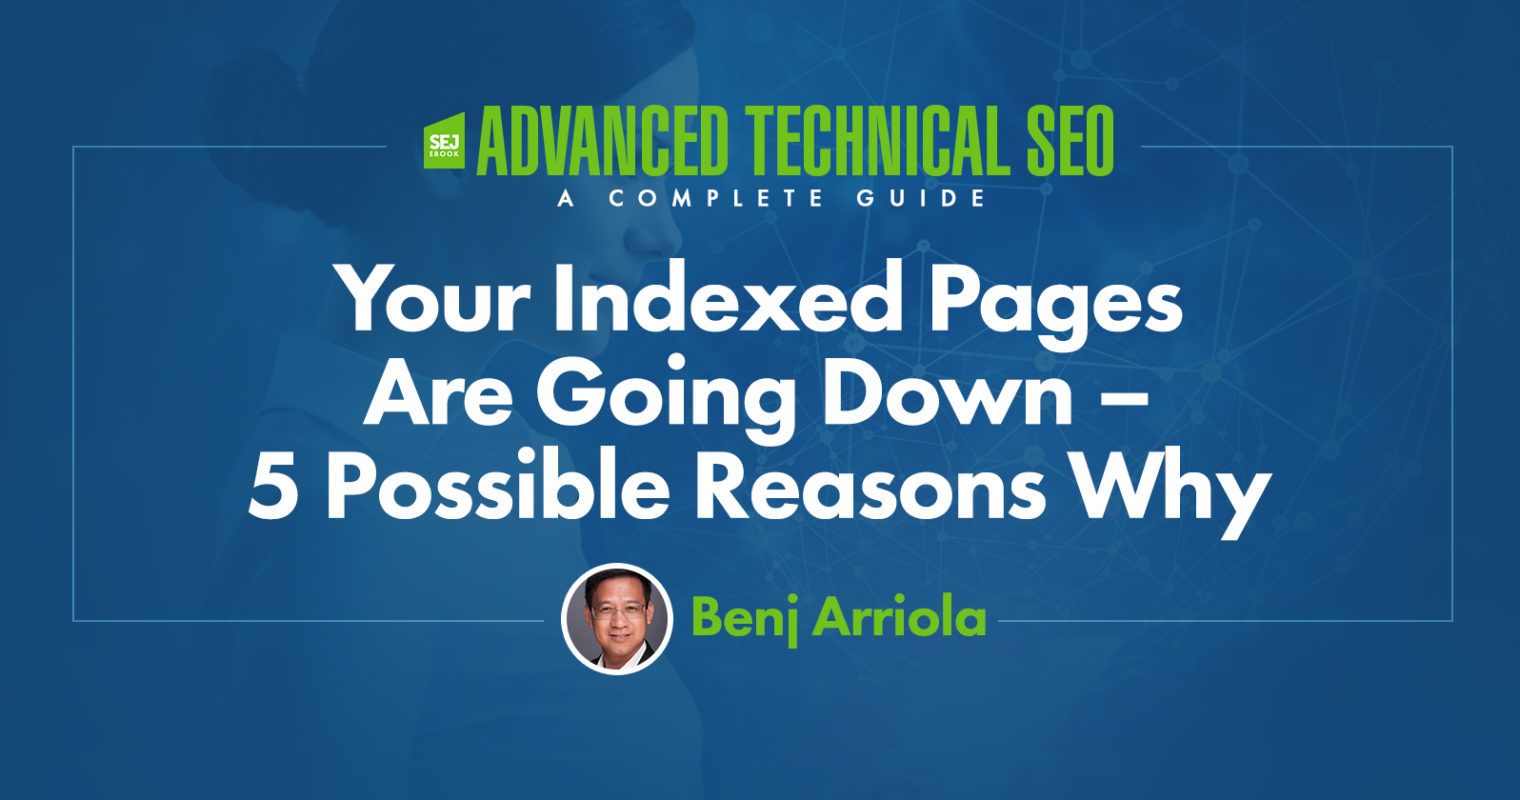 Your Indexed Pages Are Going Down – 5 Possible Reasons Why